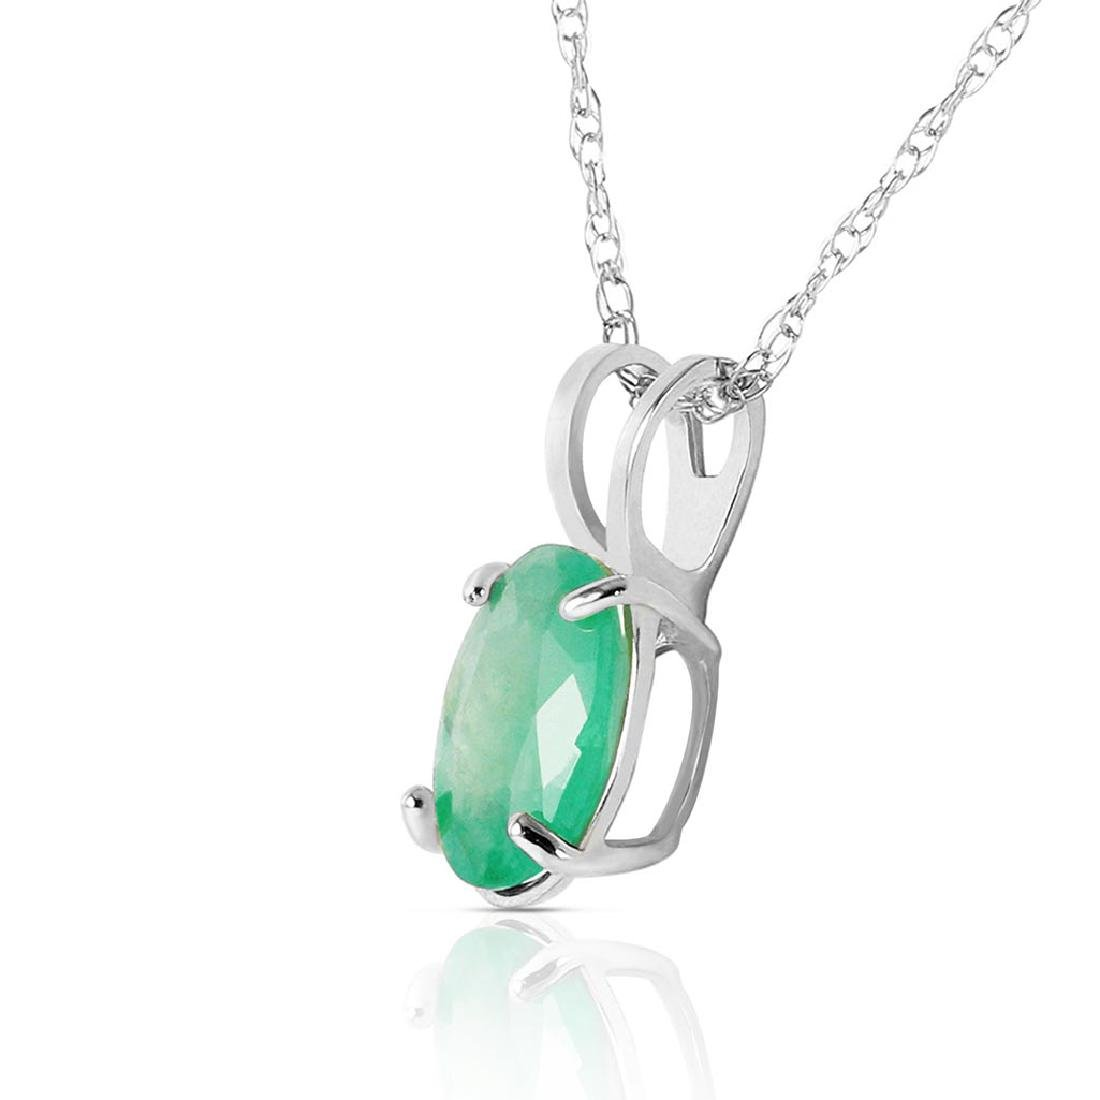 0.75 Carat 14K Solid White Gold Necklace Natural Emeral - 2